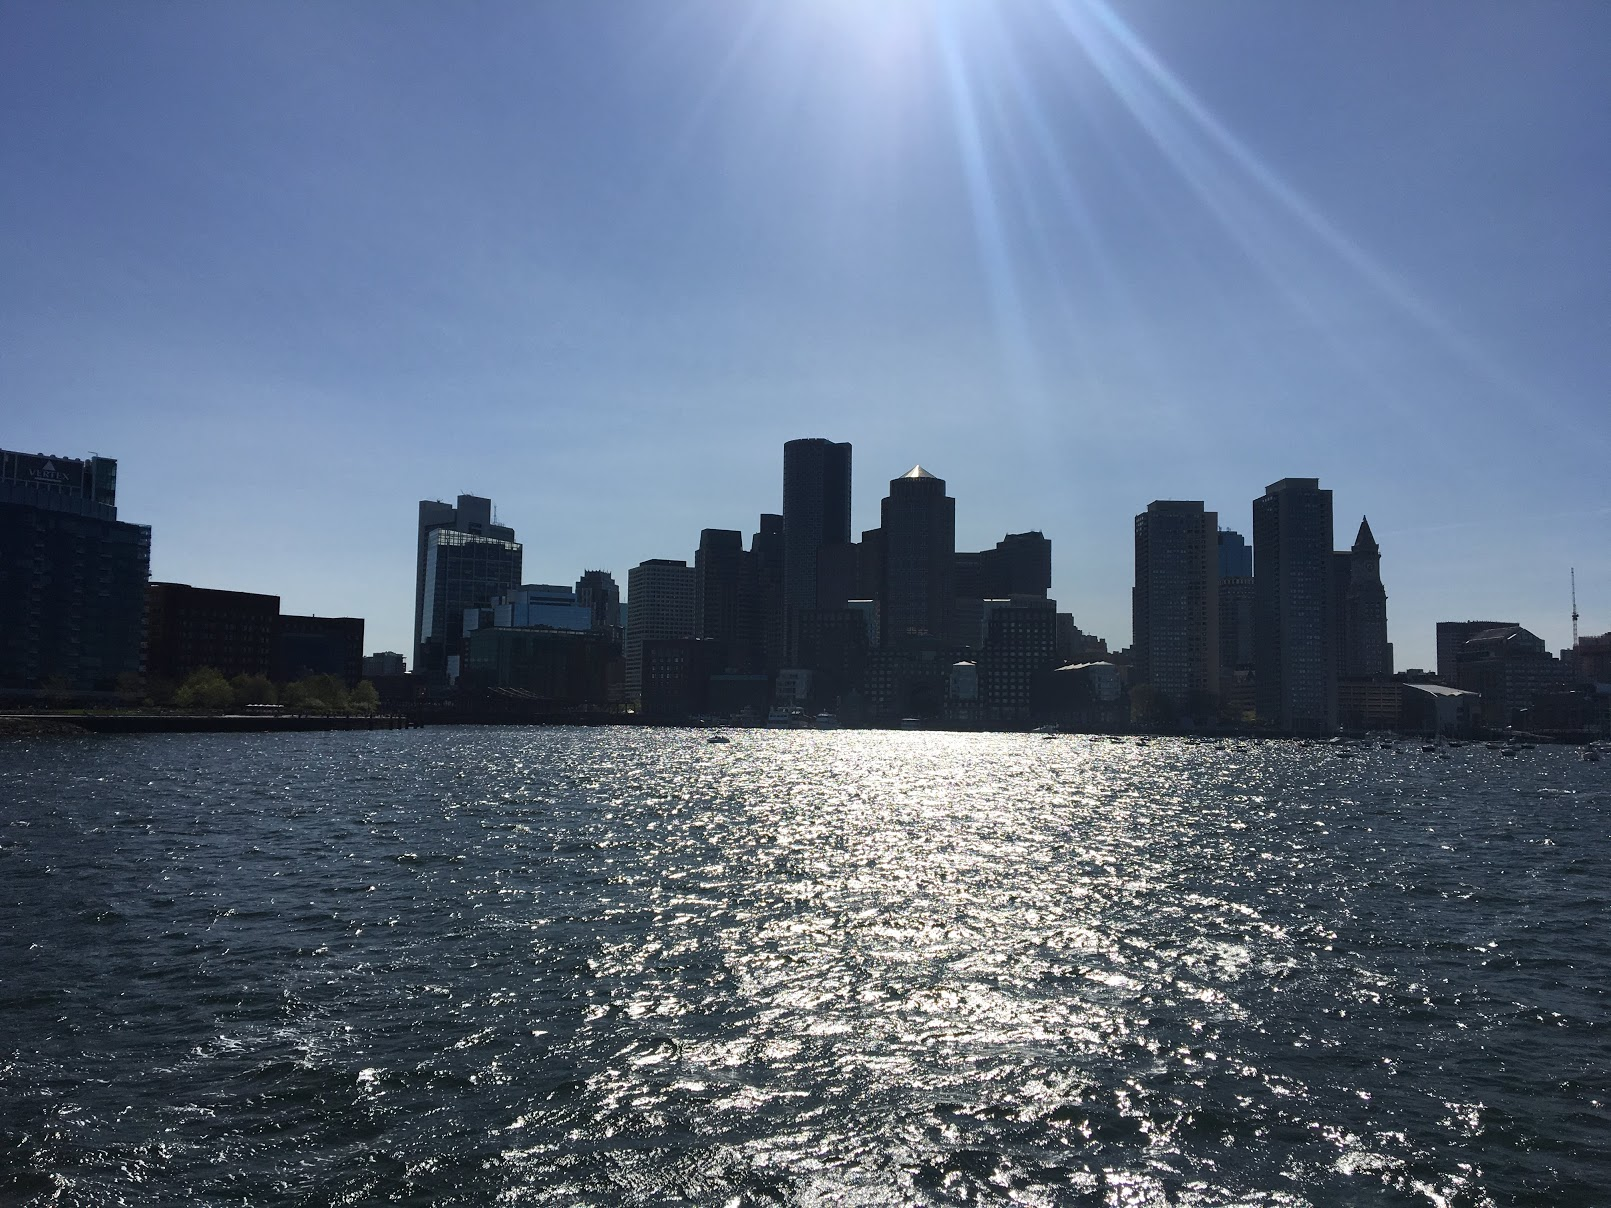 A view of Boston from Boston Harbor